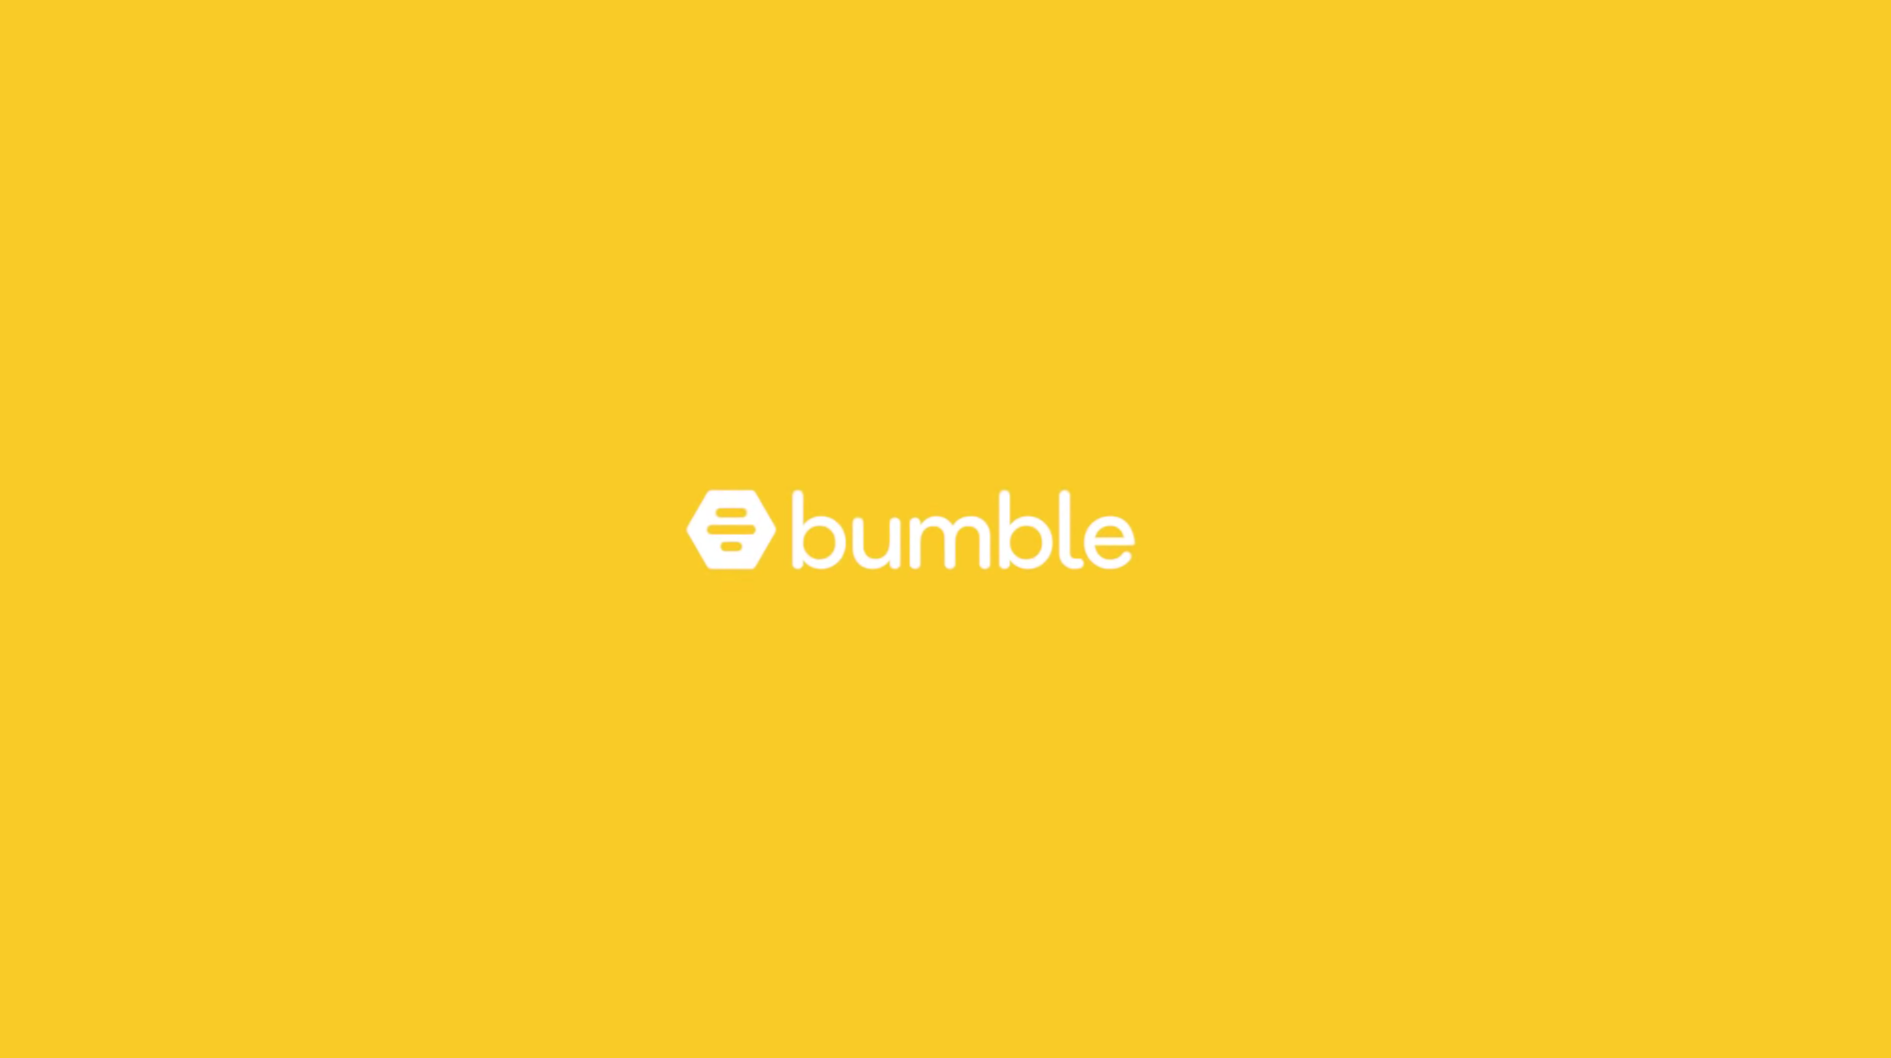 Bumble to Target $6 Billion Valuation With 2021 IPO